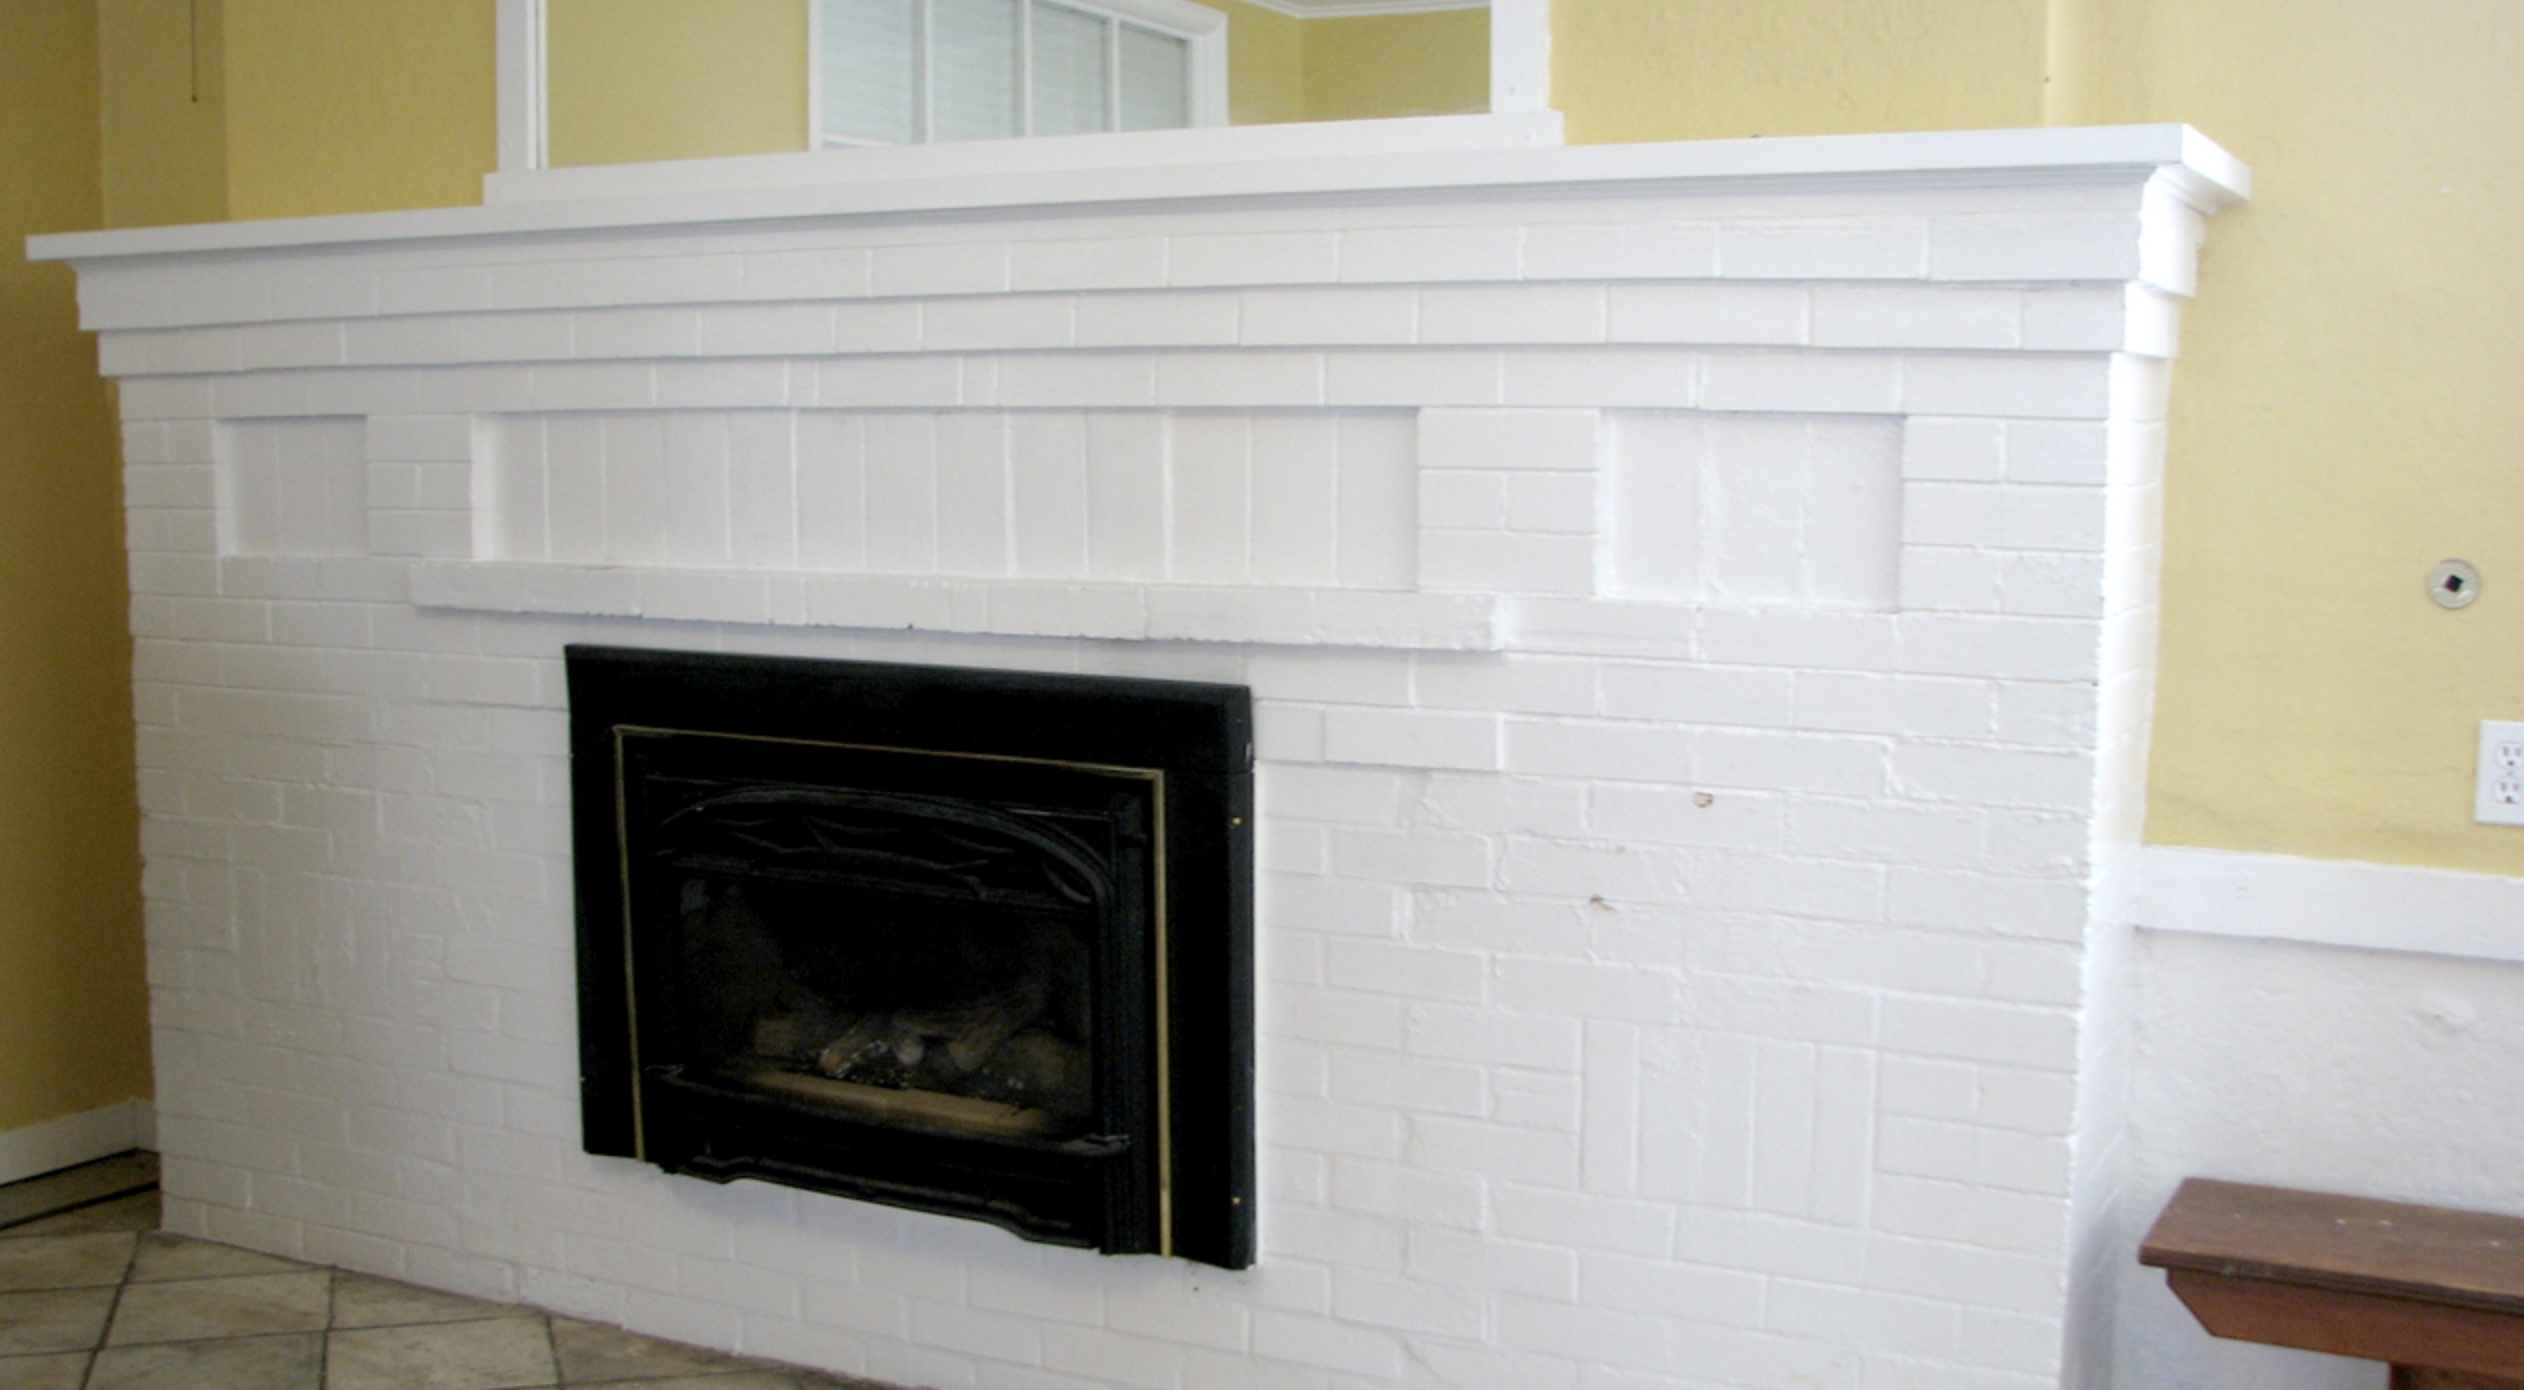 Fireplace in Lower Hall